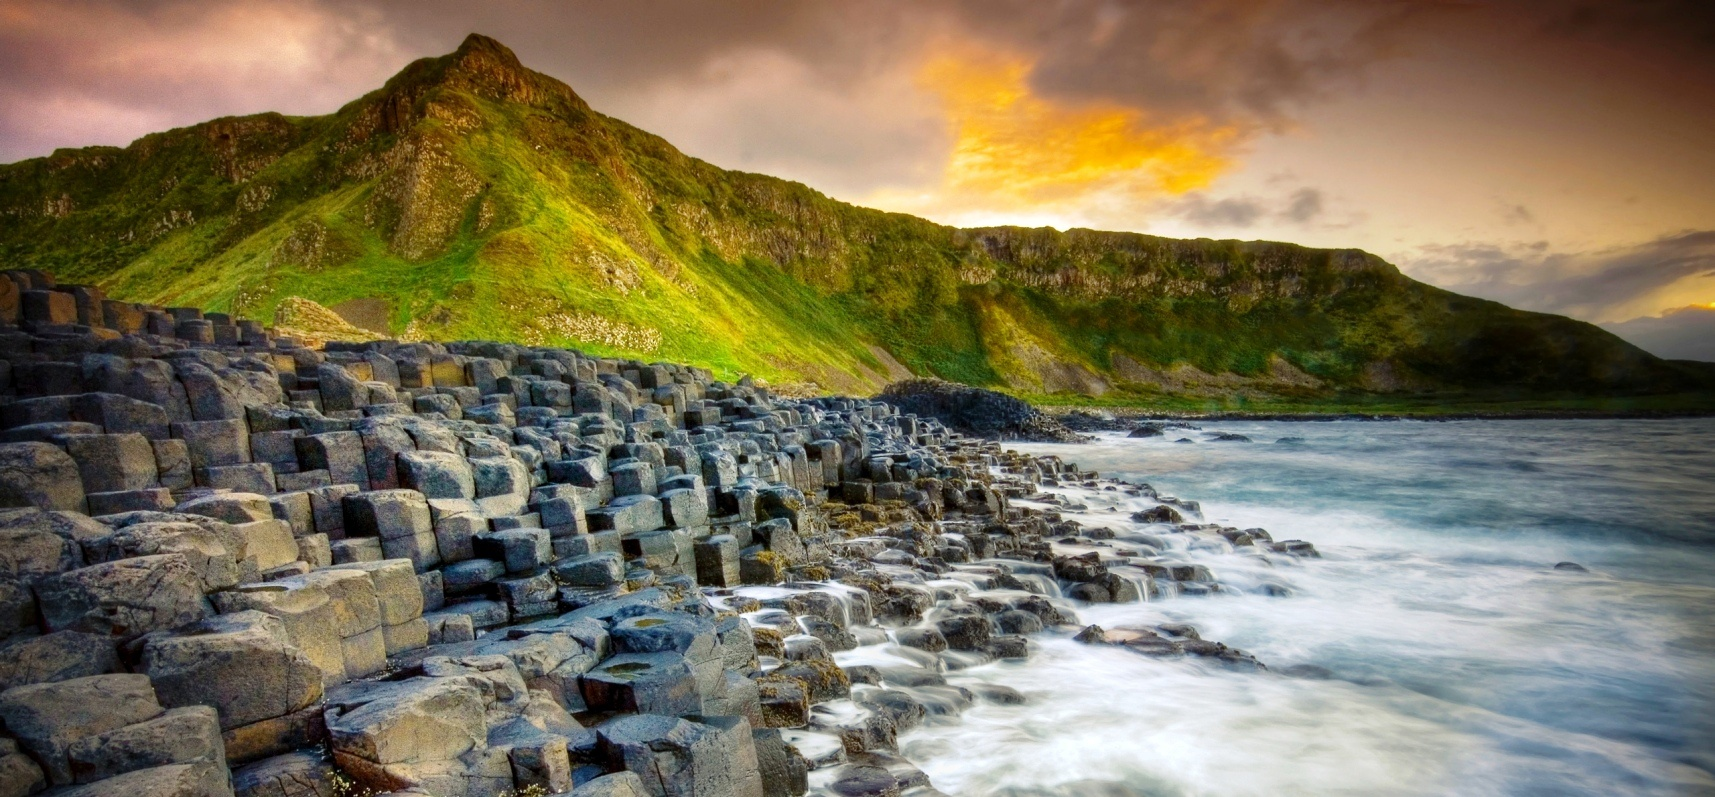 Game of Thrones Tour with Giant's Causeway - Belfast-4